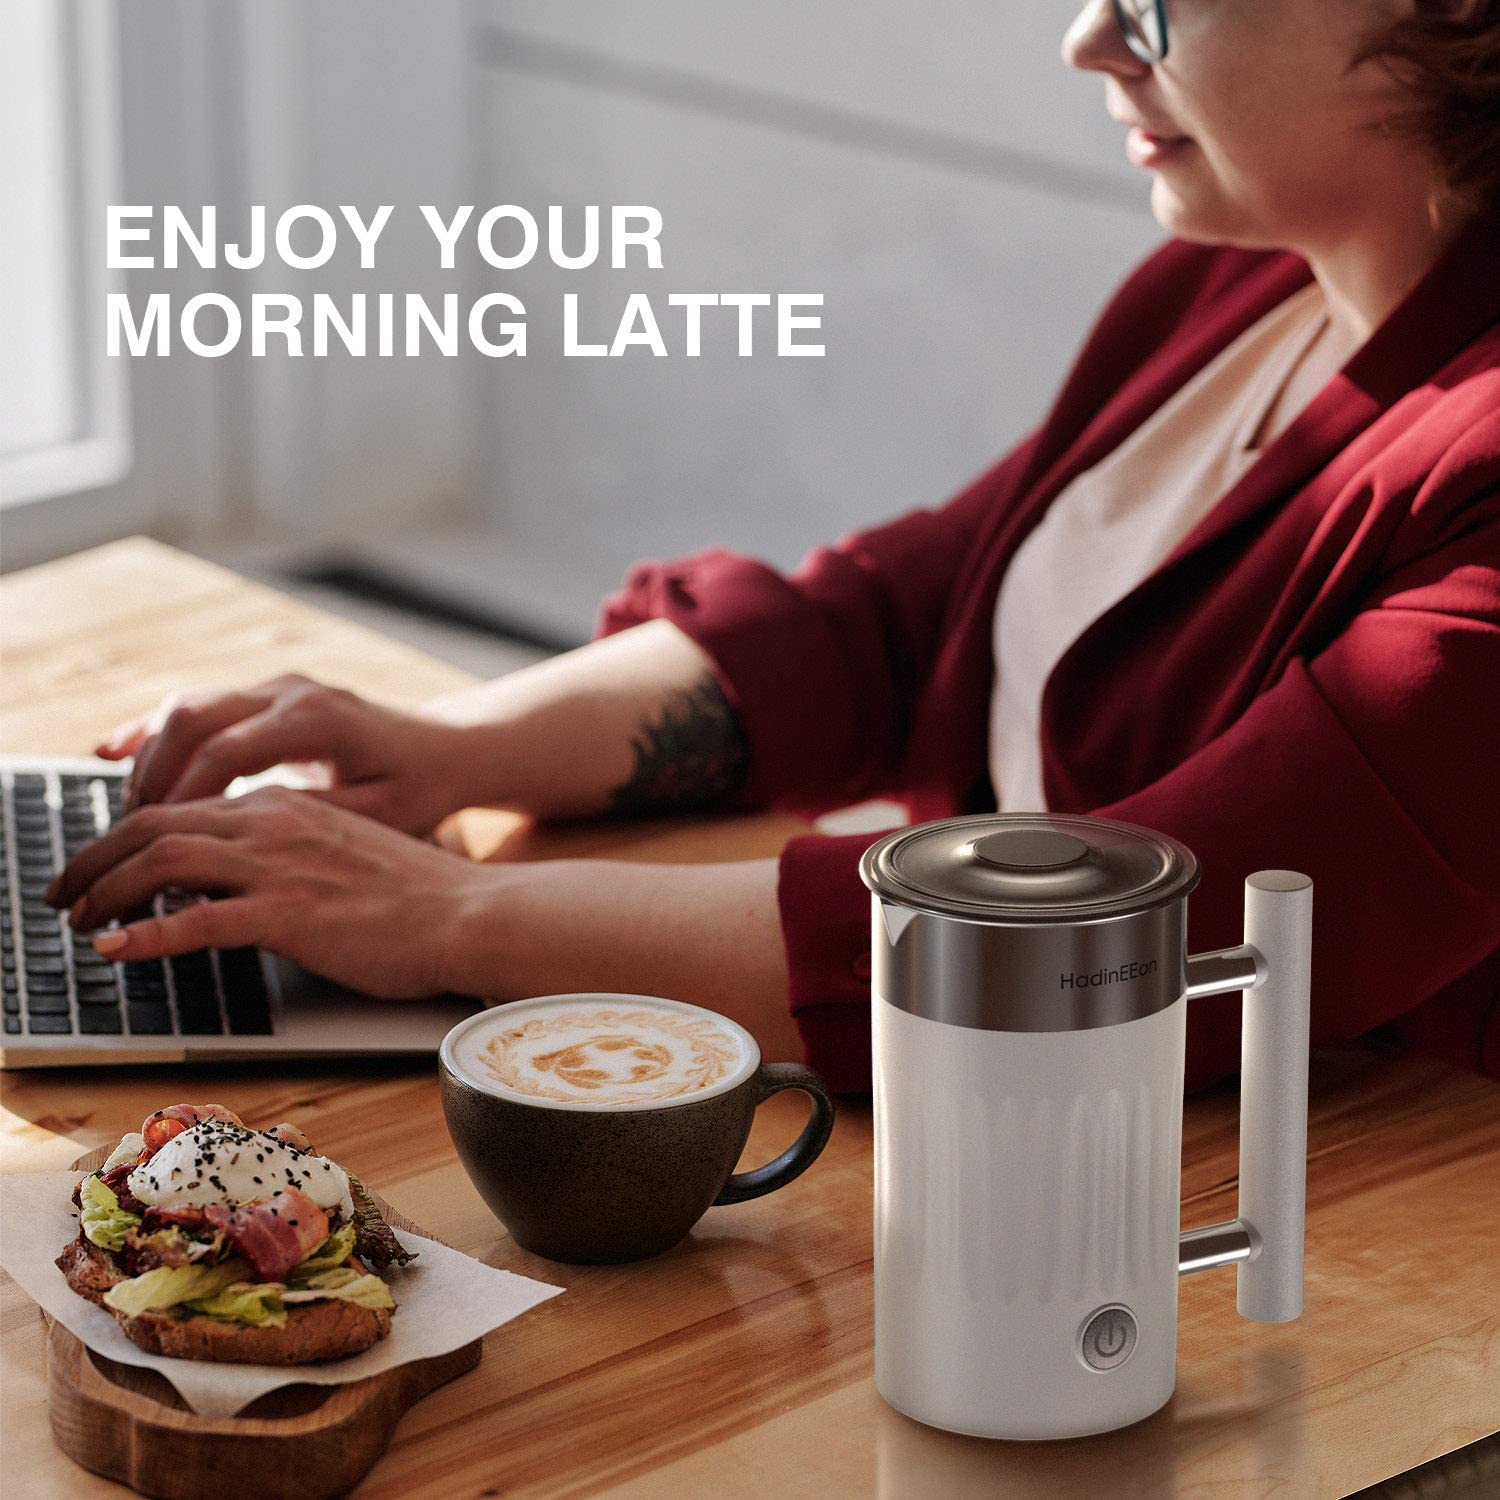 Hot Chocolates Automatic Hot Cold Milk Steamer for Coffee 5.1oz//10.1oz HadinEEon Milk Frother 5 in 1 Electric Magnetic Milk Frother and Hot Chocolate Maker Stainless Steel Cappuccino Latte